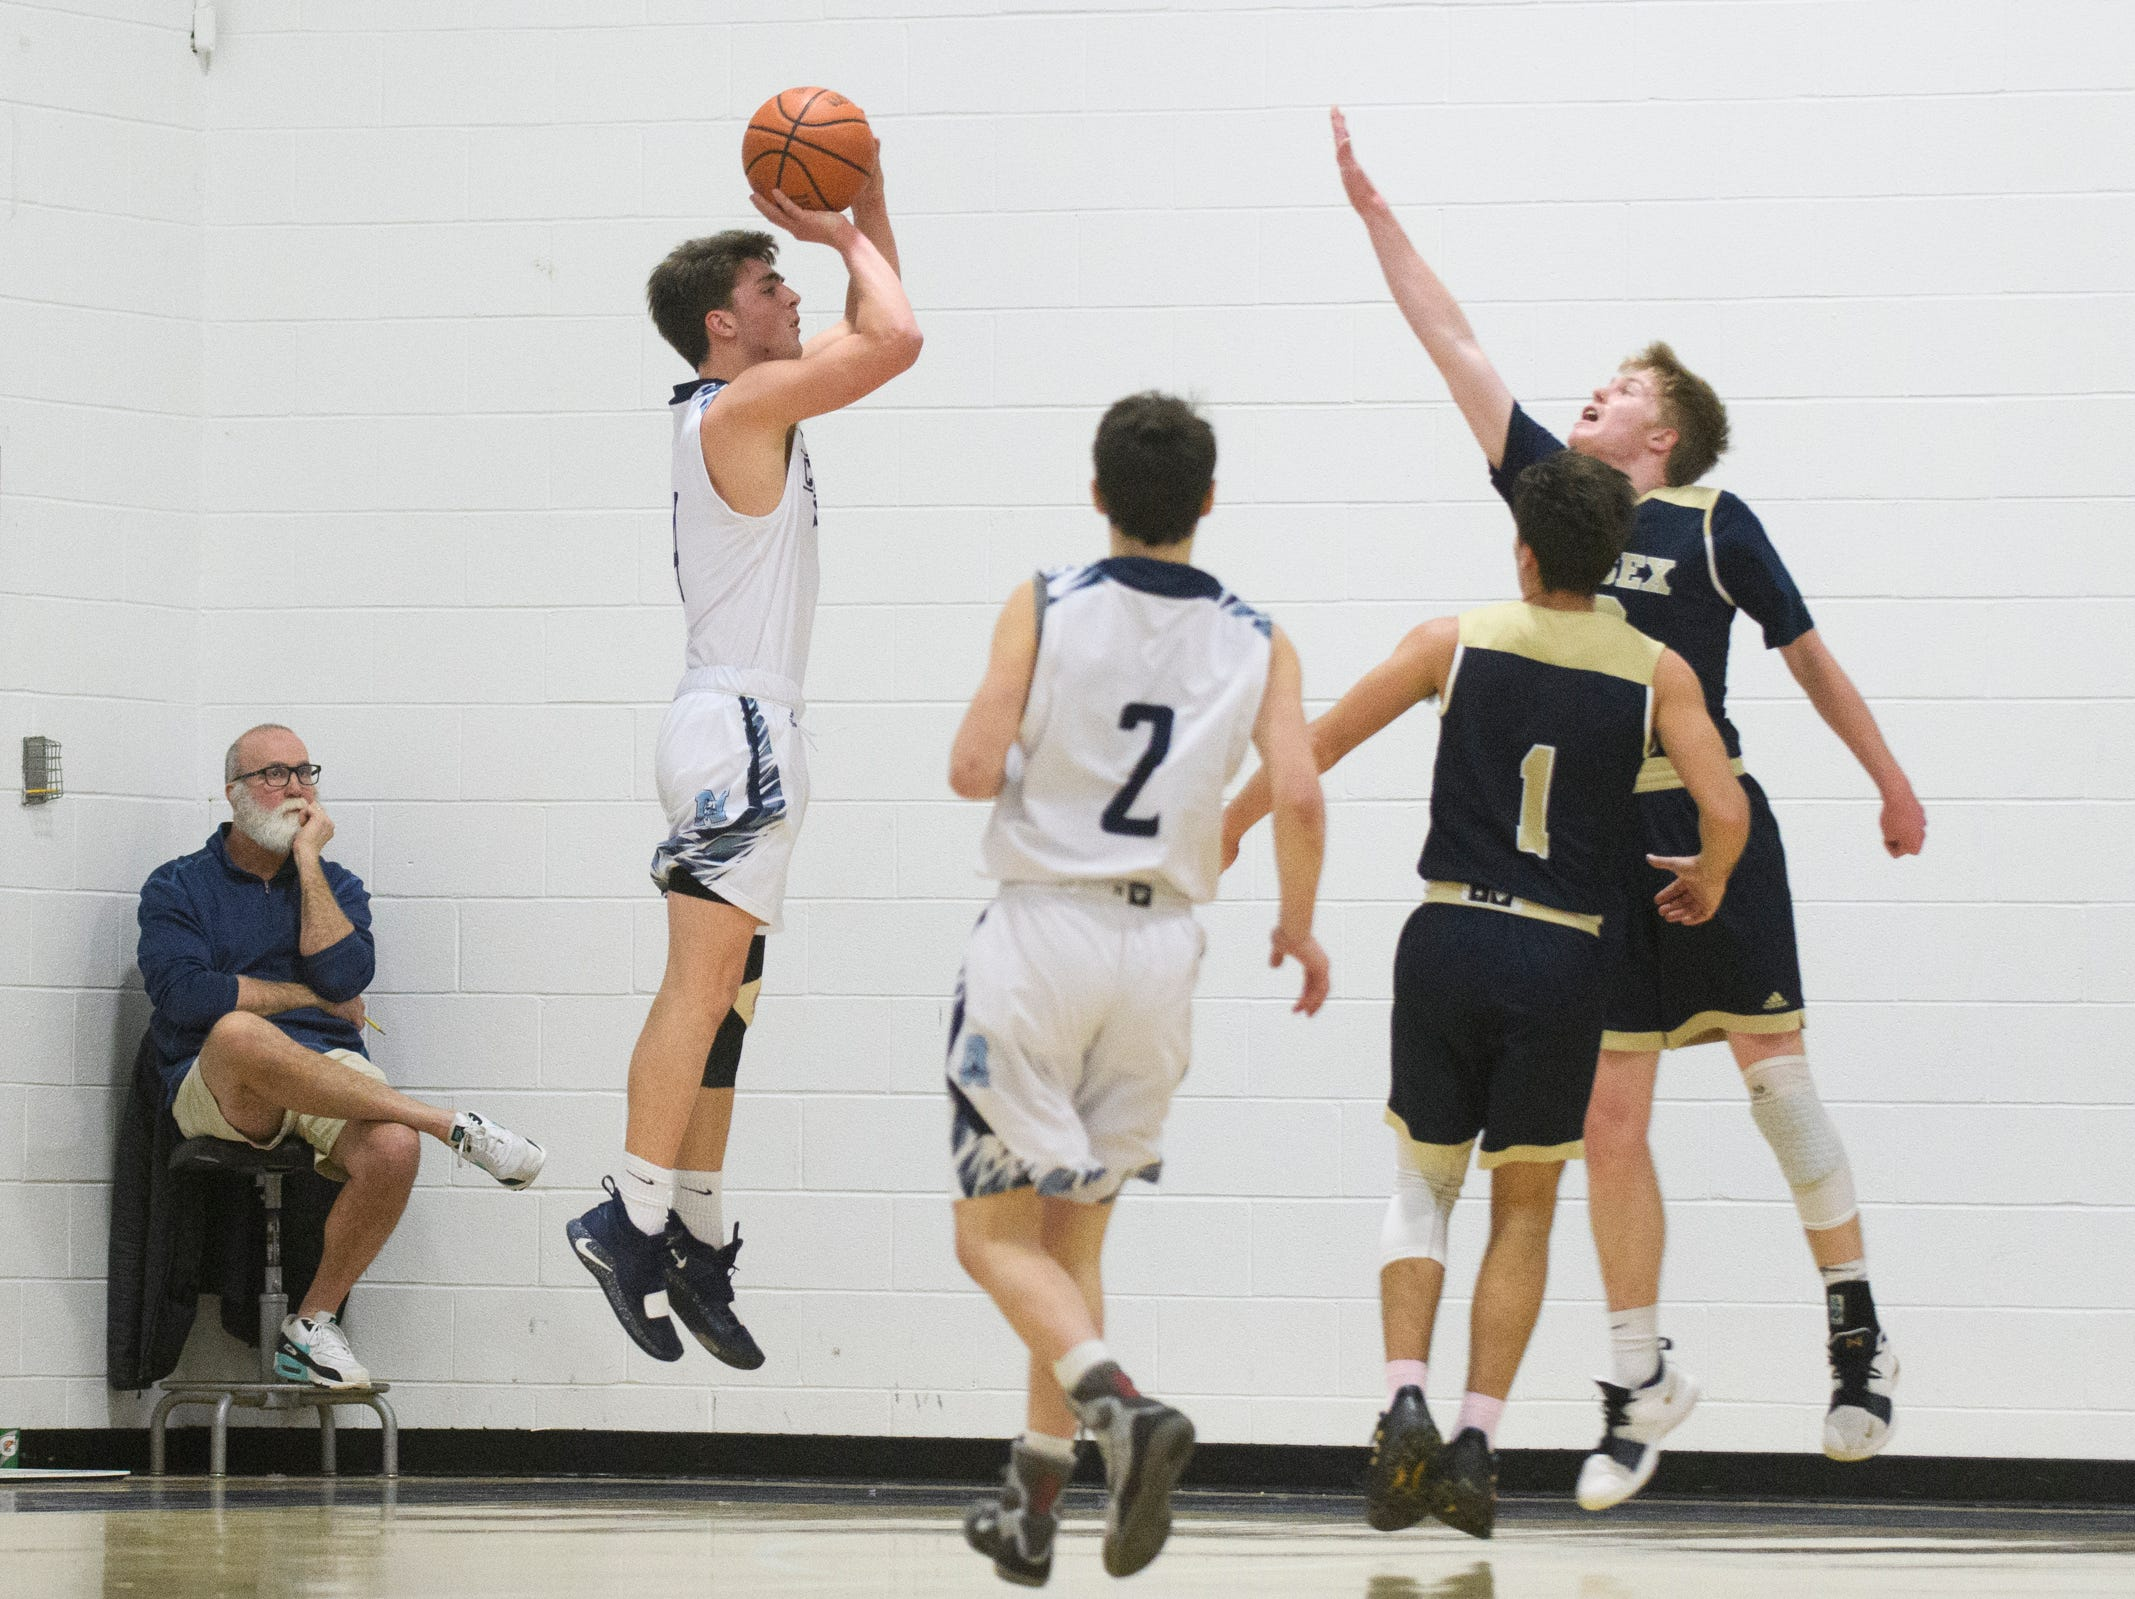 MMU's Harrison Leombruno-Nichlson (4) shoots a three pointer during the boys basketball game between the Essex Hornets and the Mount Mansfield Cougars at MMU High School on Wednesday night February 13, 2019 in Jericho, Vermont.